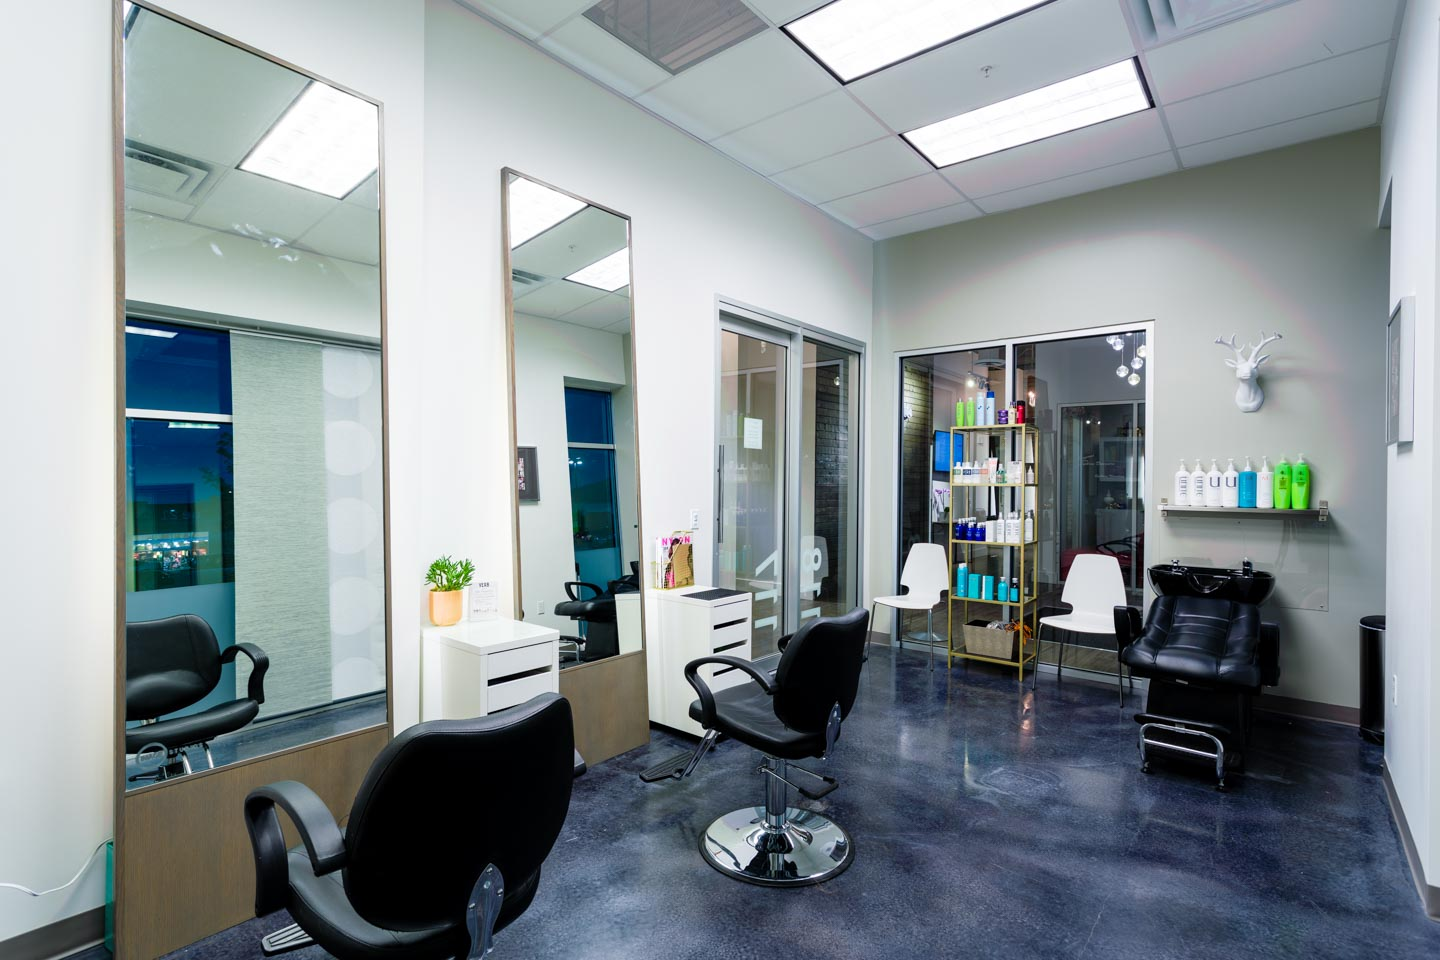 A great looking studio helps business